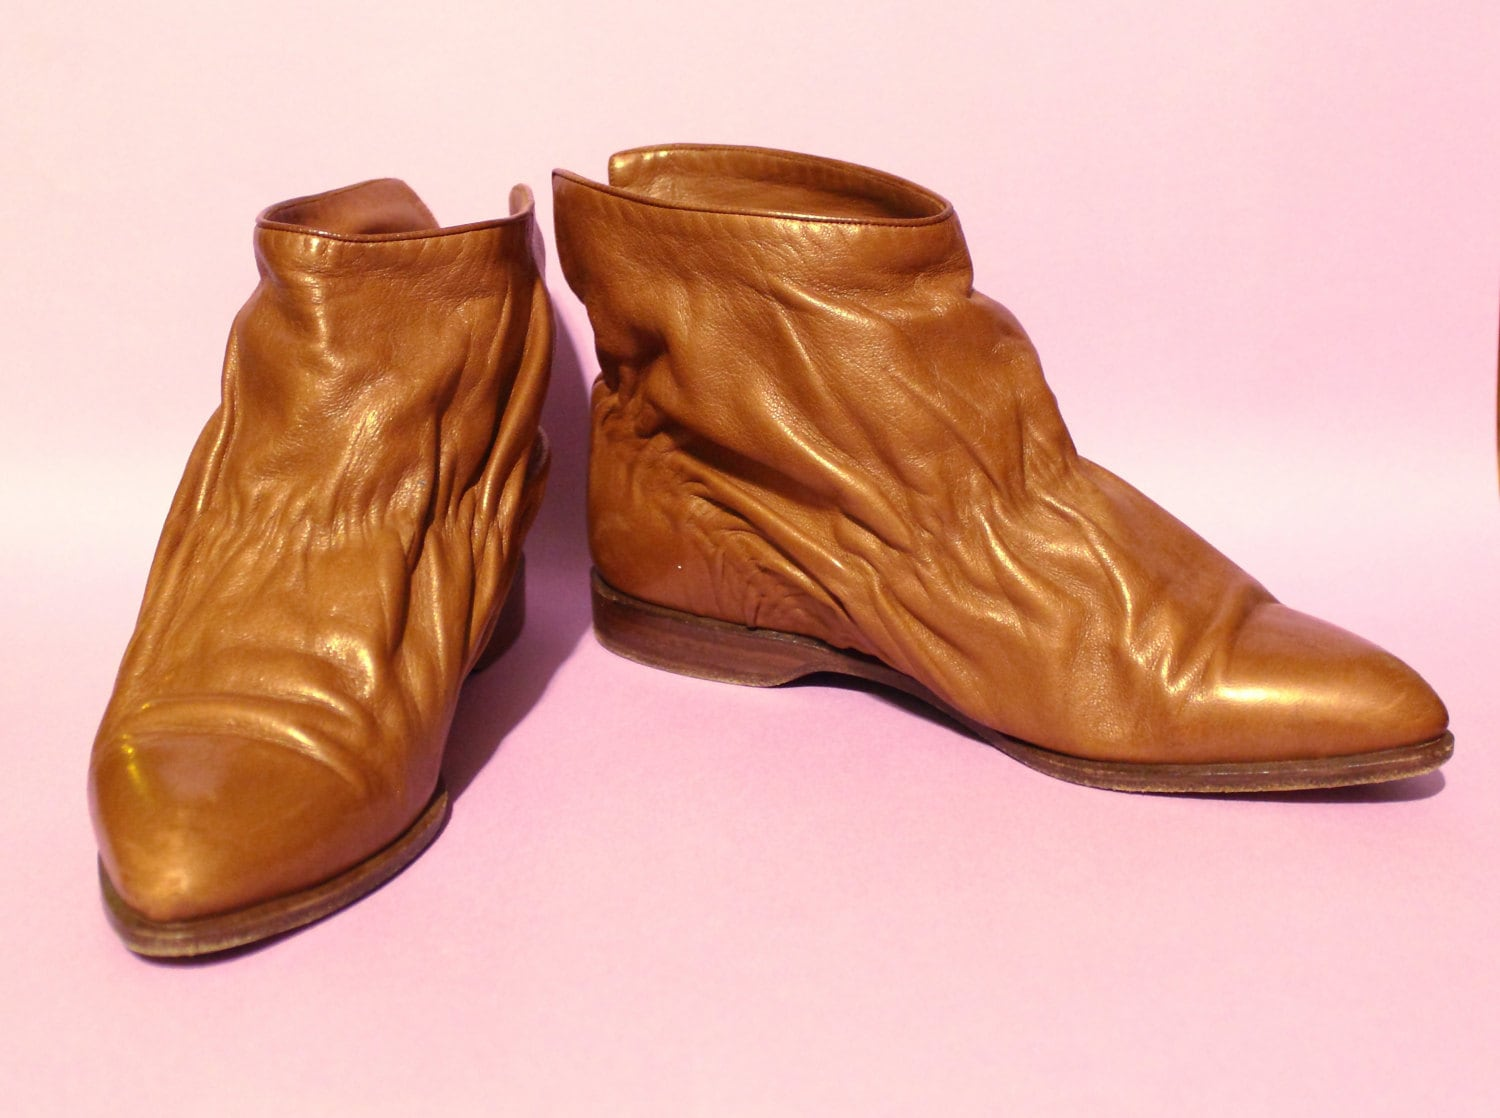 80s Designer Italy Shoes Size 6 B Women Tan Leather Ankle Shoes